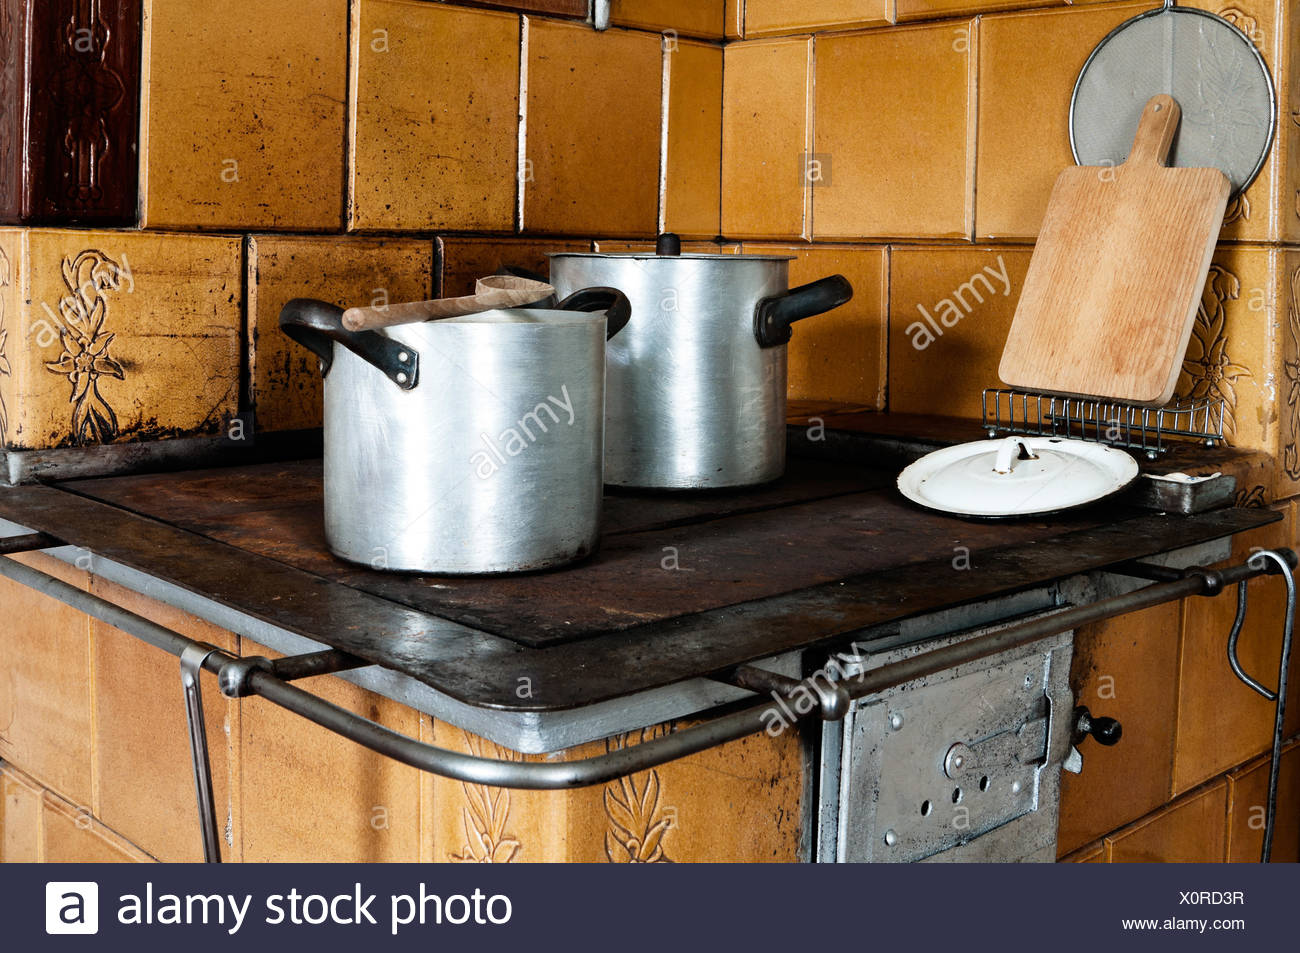 Old Fashioned Kitchen Stove